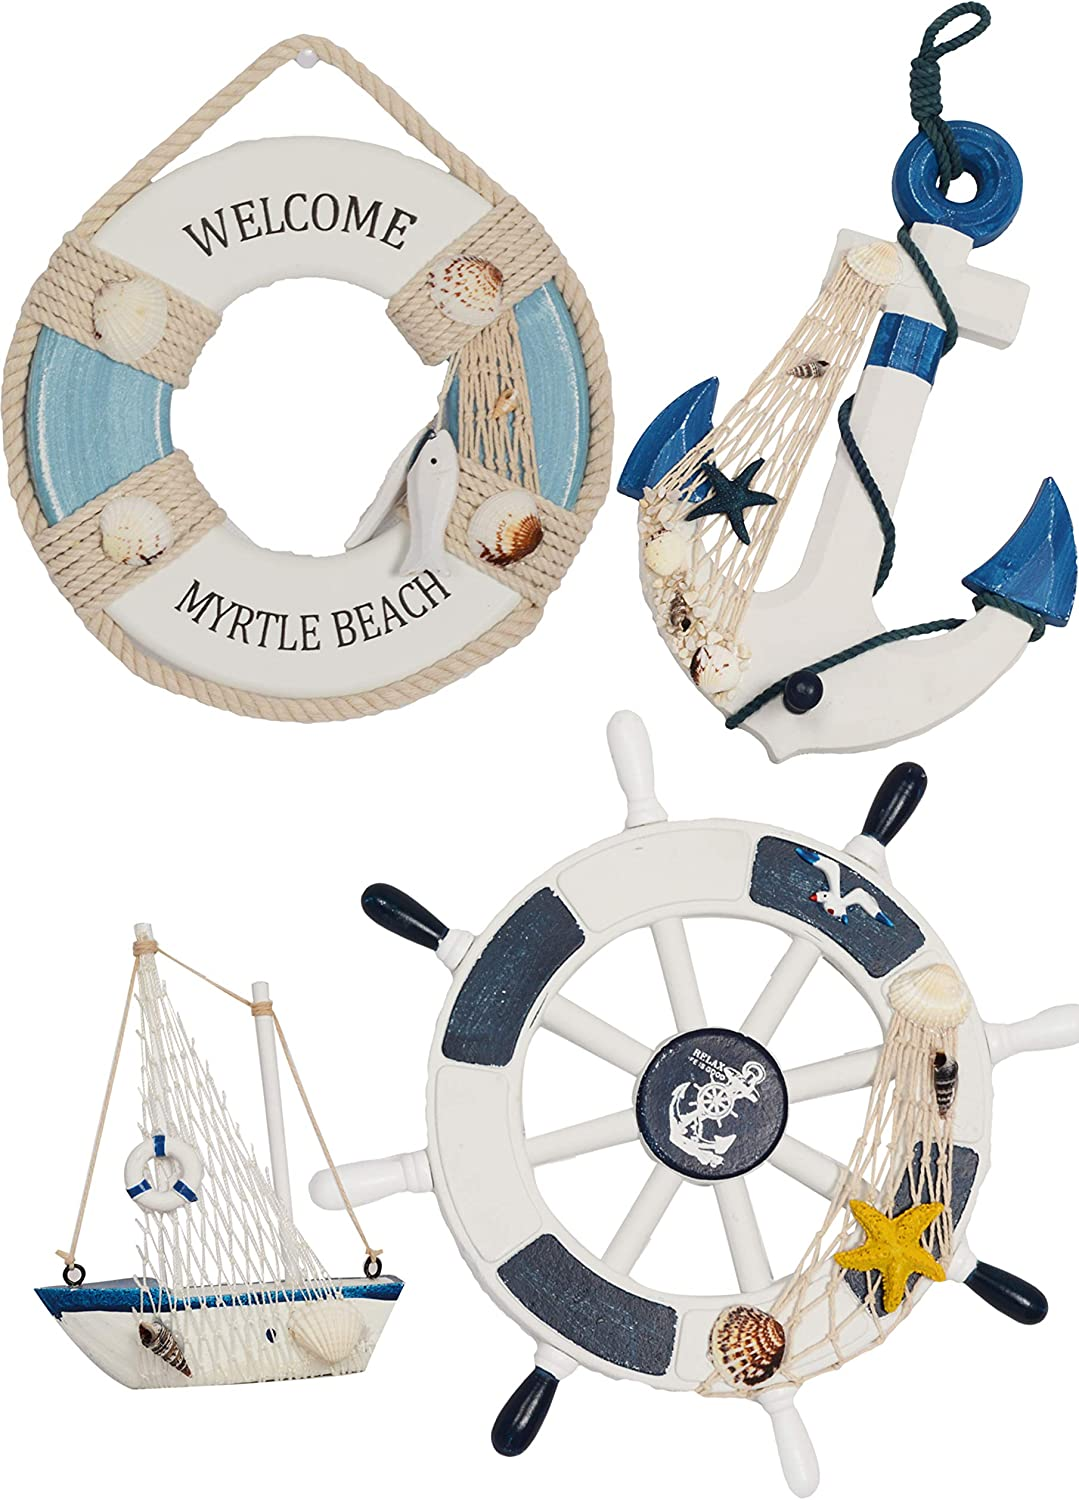 Wooden Nautical Lighthouse Anchor Wall Hanging Ornament, Beach Wooden Boat Ship Steering Wheel Wall Decor, Nautical Life Ring Wall and Door Hanging Ornament Plaque (White)